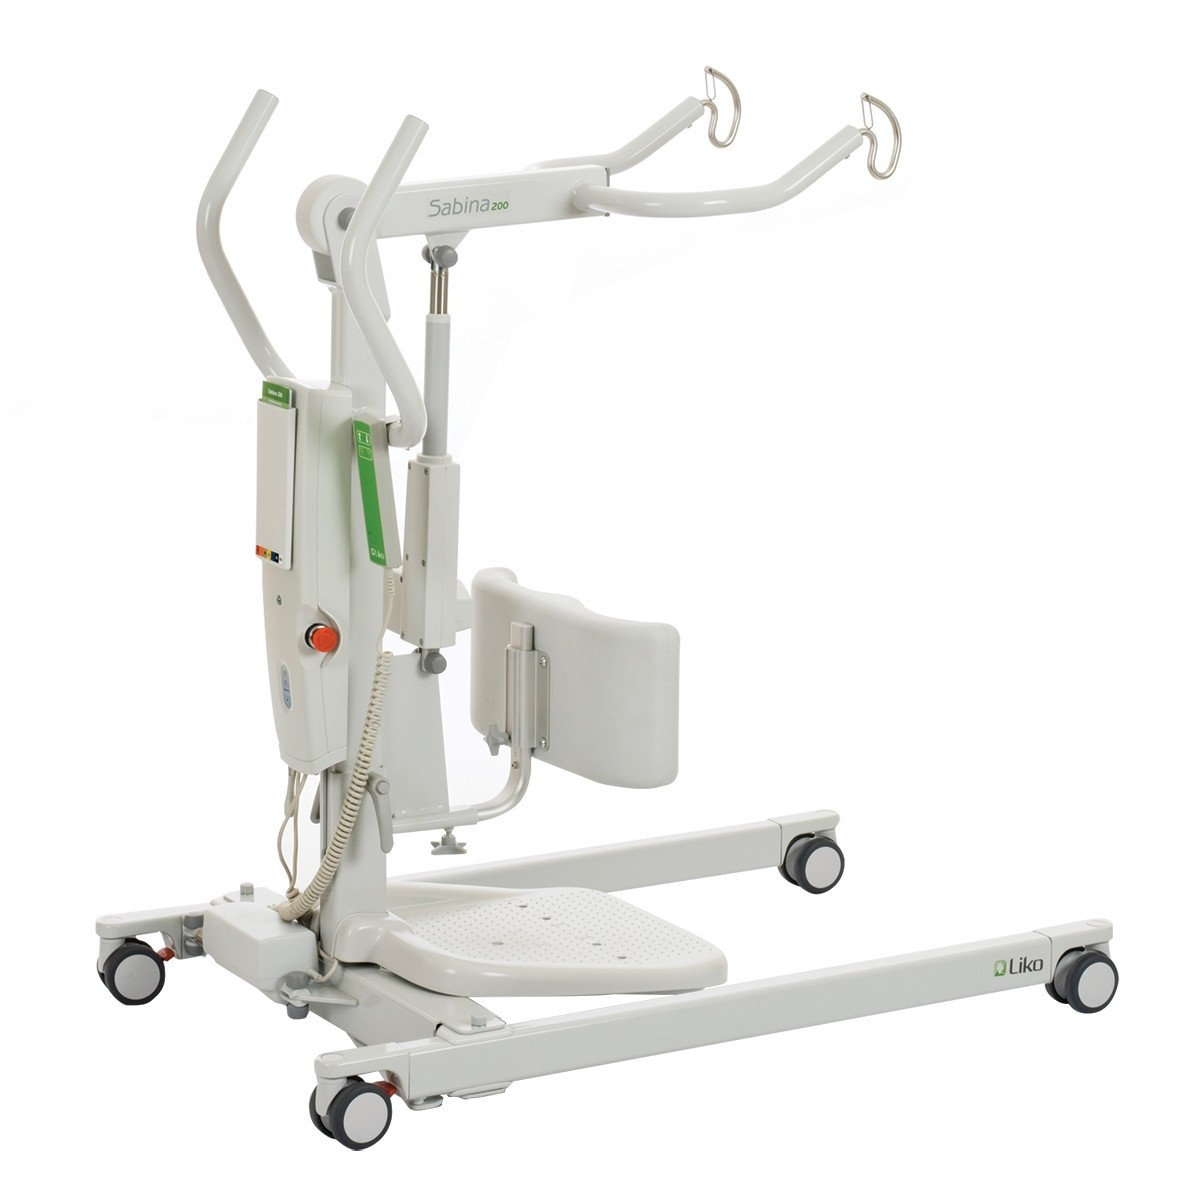 Liko Sabina 200 Electric Sit-To-Stand Lift